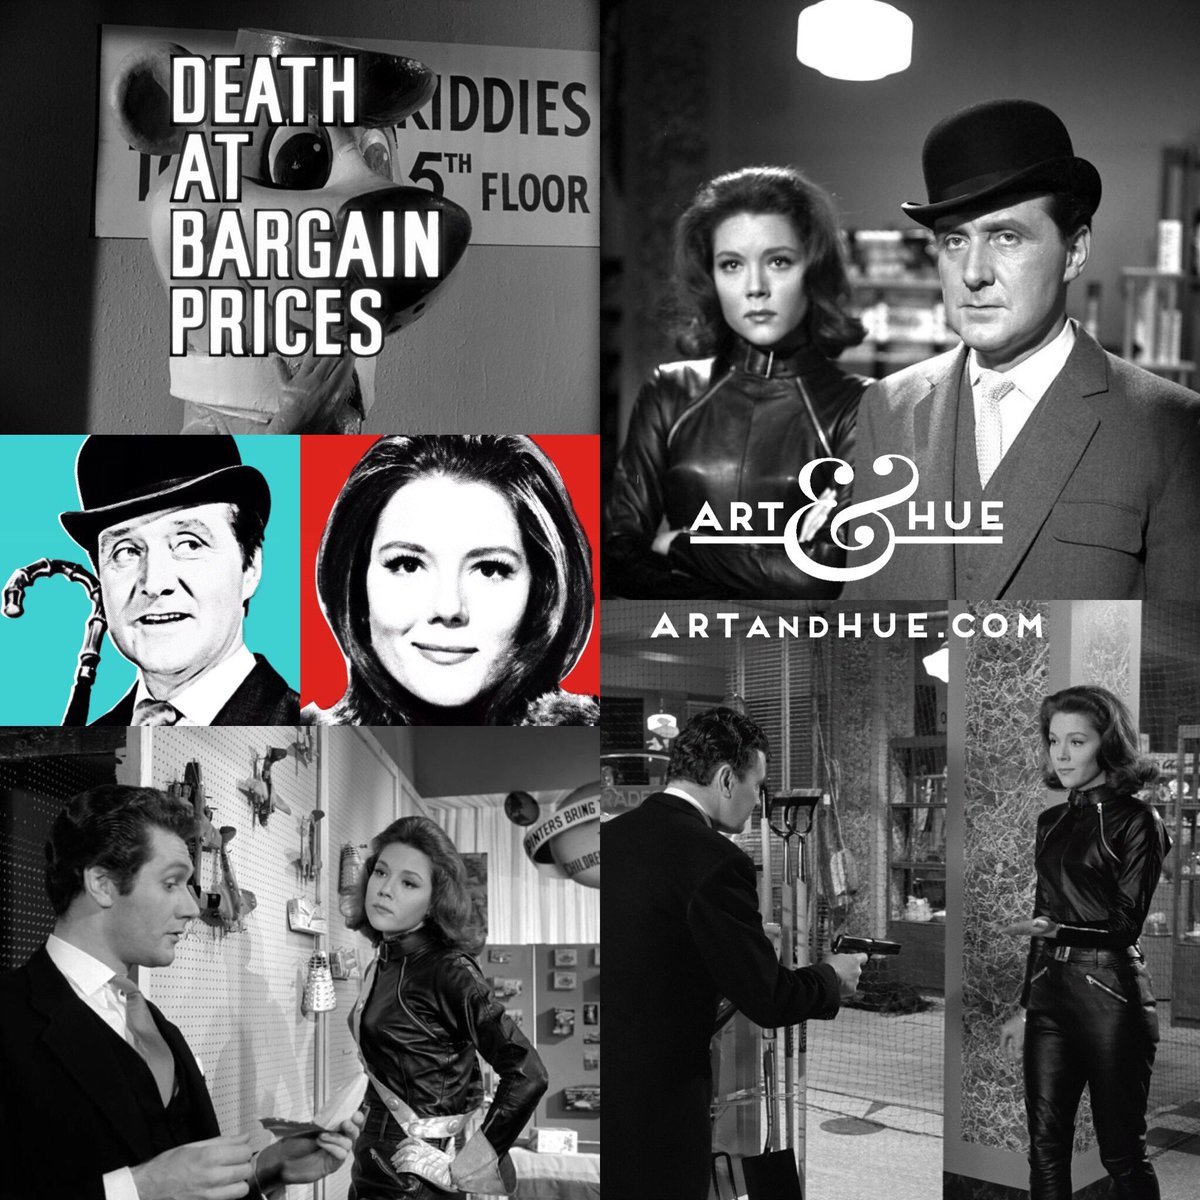 """That's a wrap! On this day in 1965, The Avengers episode """"Death at Bargain Prices"""" finished filming at Elstree Studios.   http://artandhue.com/theavengers   #dianarigg #mrspeel #patrickmacnee #johnsteed #MadeAtElstree #OnThisDay #OTD #TheAvengers #DeathAtBargainPrices #DameDianaRigg"""